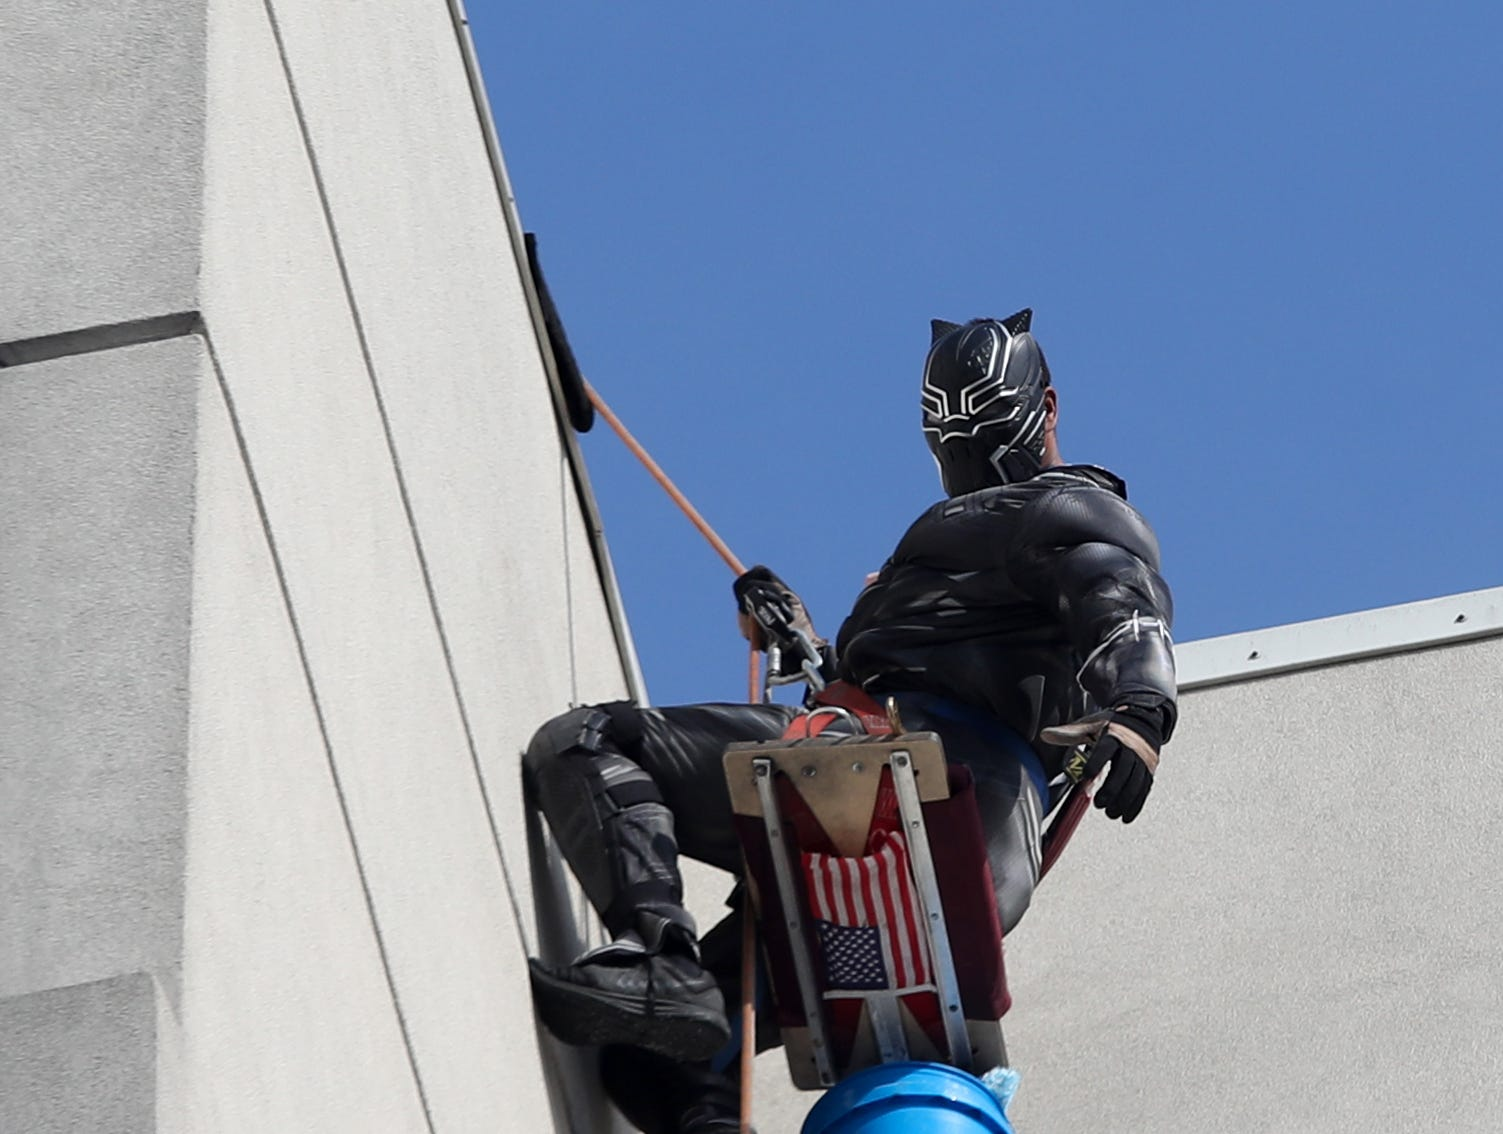 Pro Clean International cleans the windows at Norton Children's Hospital on Thursday morning dressed as Superheroes.  Lionel Bass is dressed up as the Black Panther.  Feb. 21, 2019